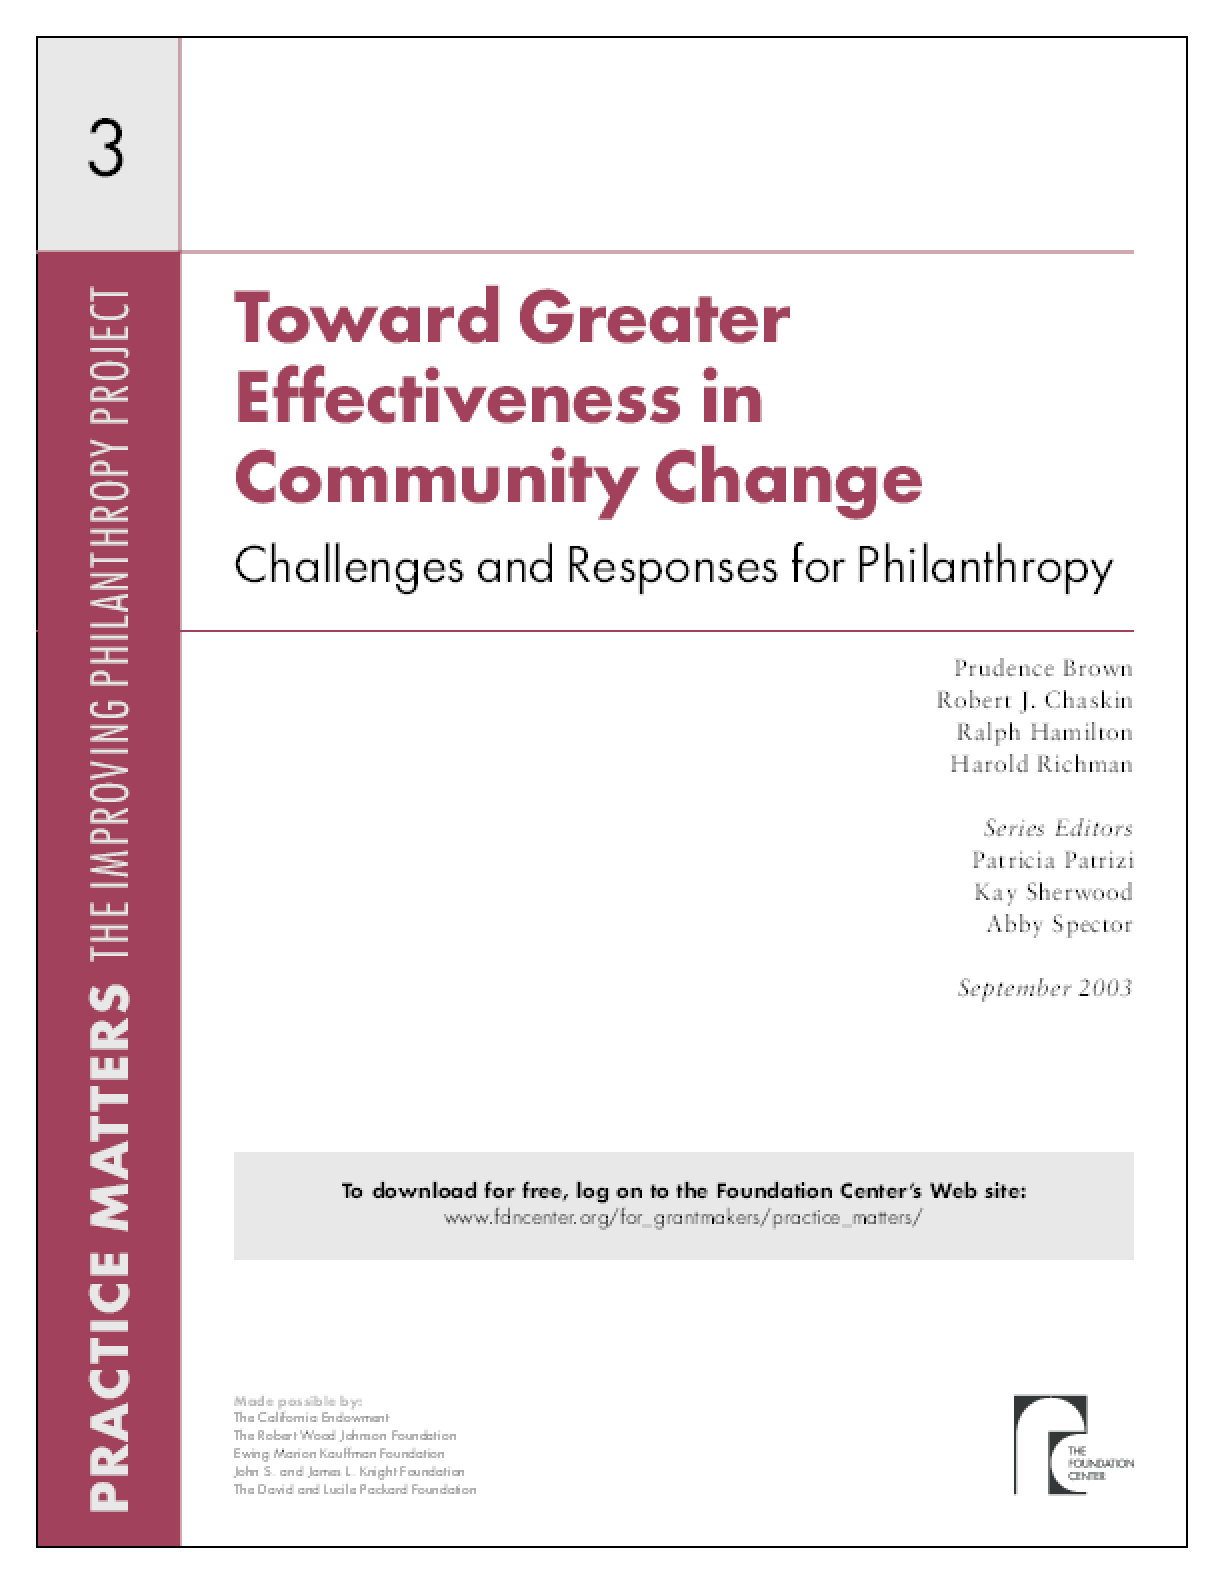 Toward Greater Effectiveness in Community Change: Challenges and Responses for Philanthropy